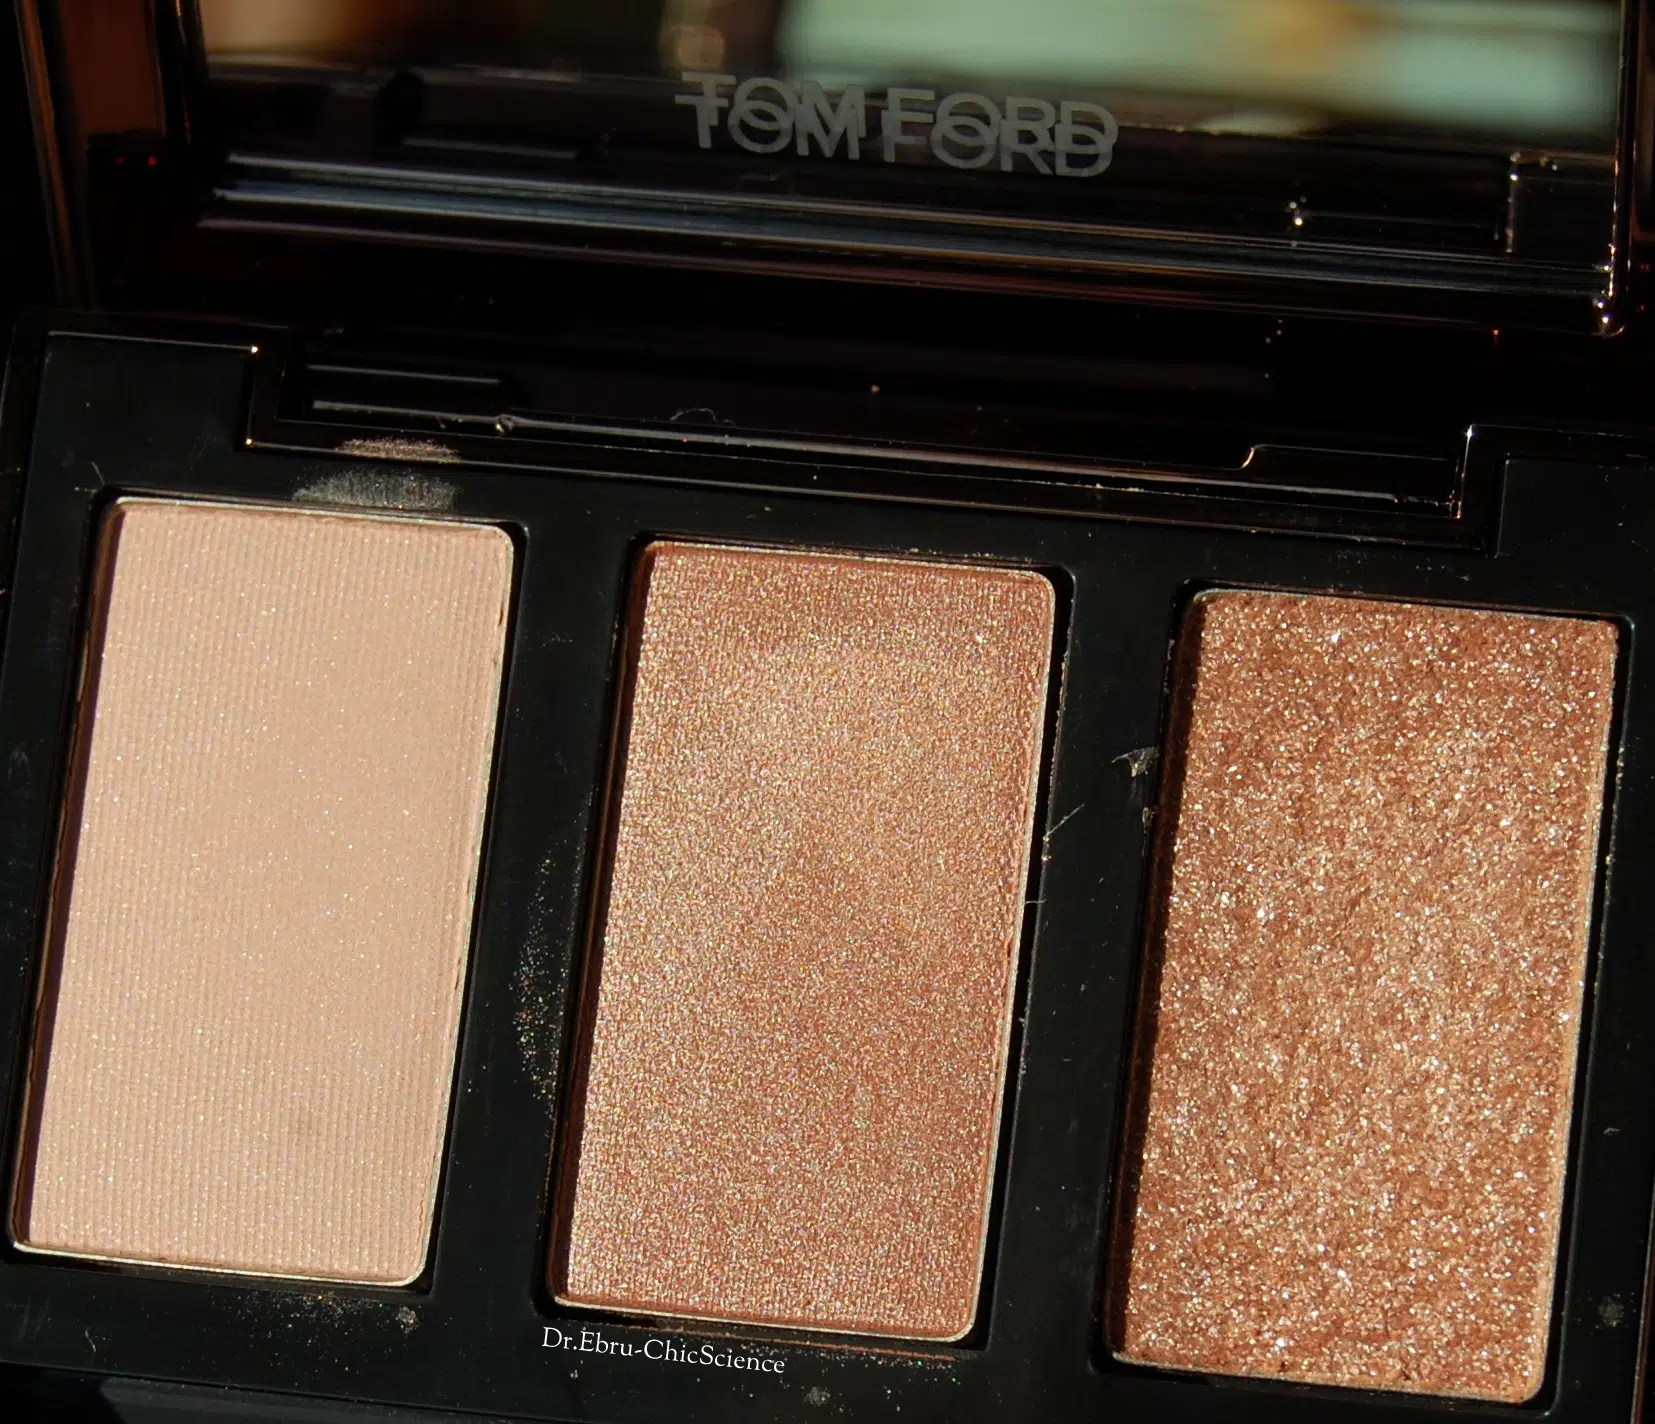 Tom Ford Ombré Eye Color Trio In The Pink Chicscience